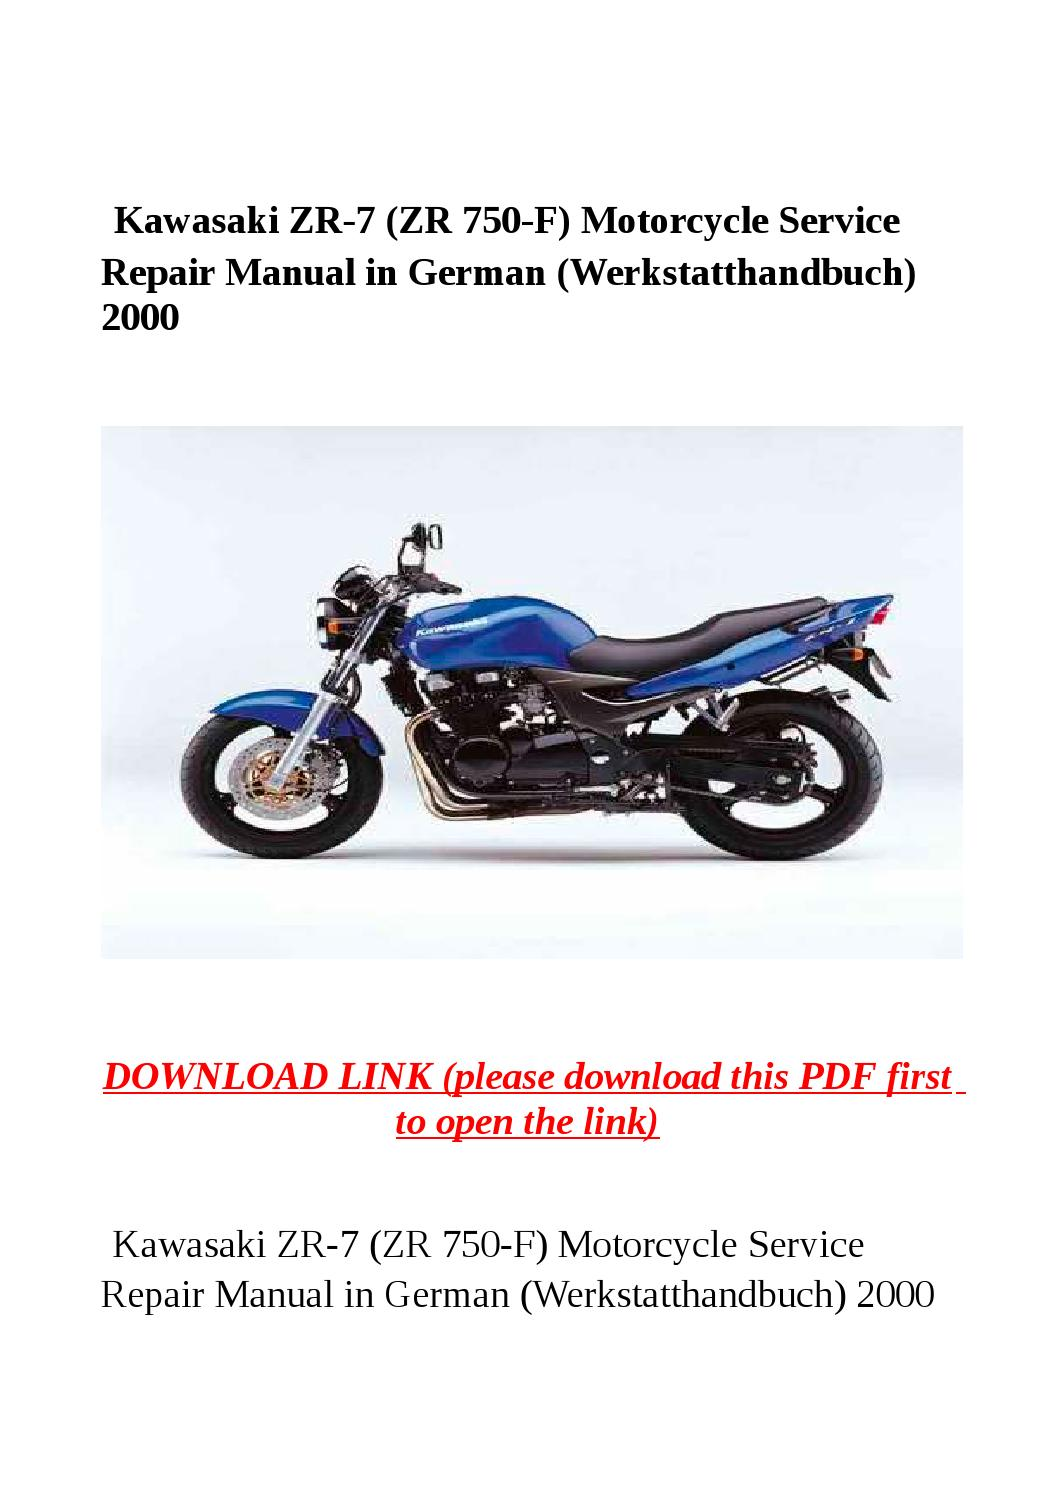 Kawasaki zr 7 (zr 750 f) motorcycle service repair manual in german  (werkstatthandbuch) 2000 by Dora tang - issuu